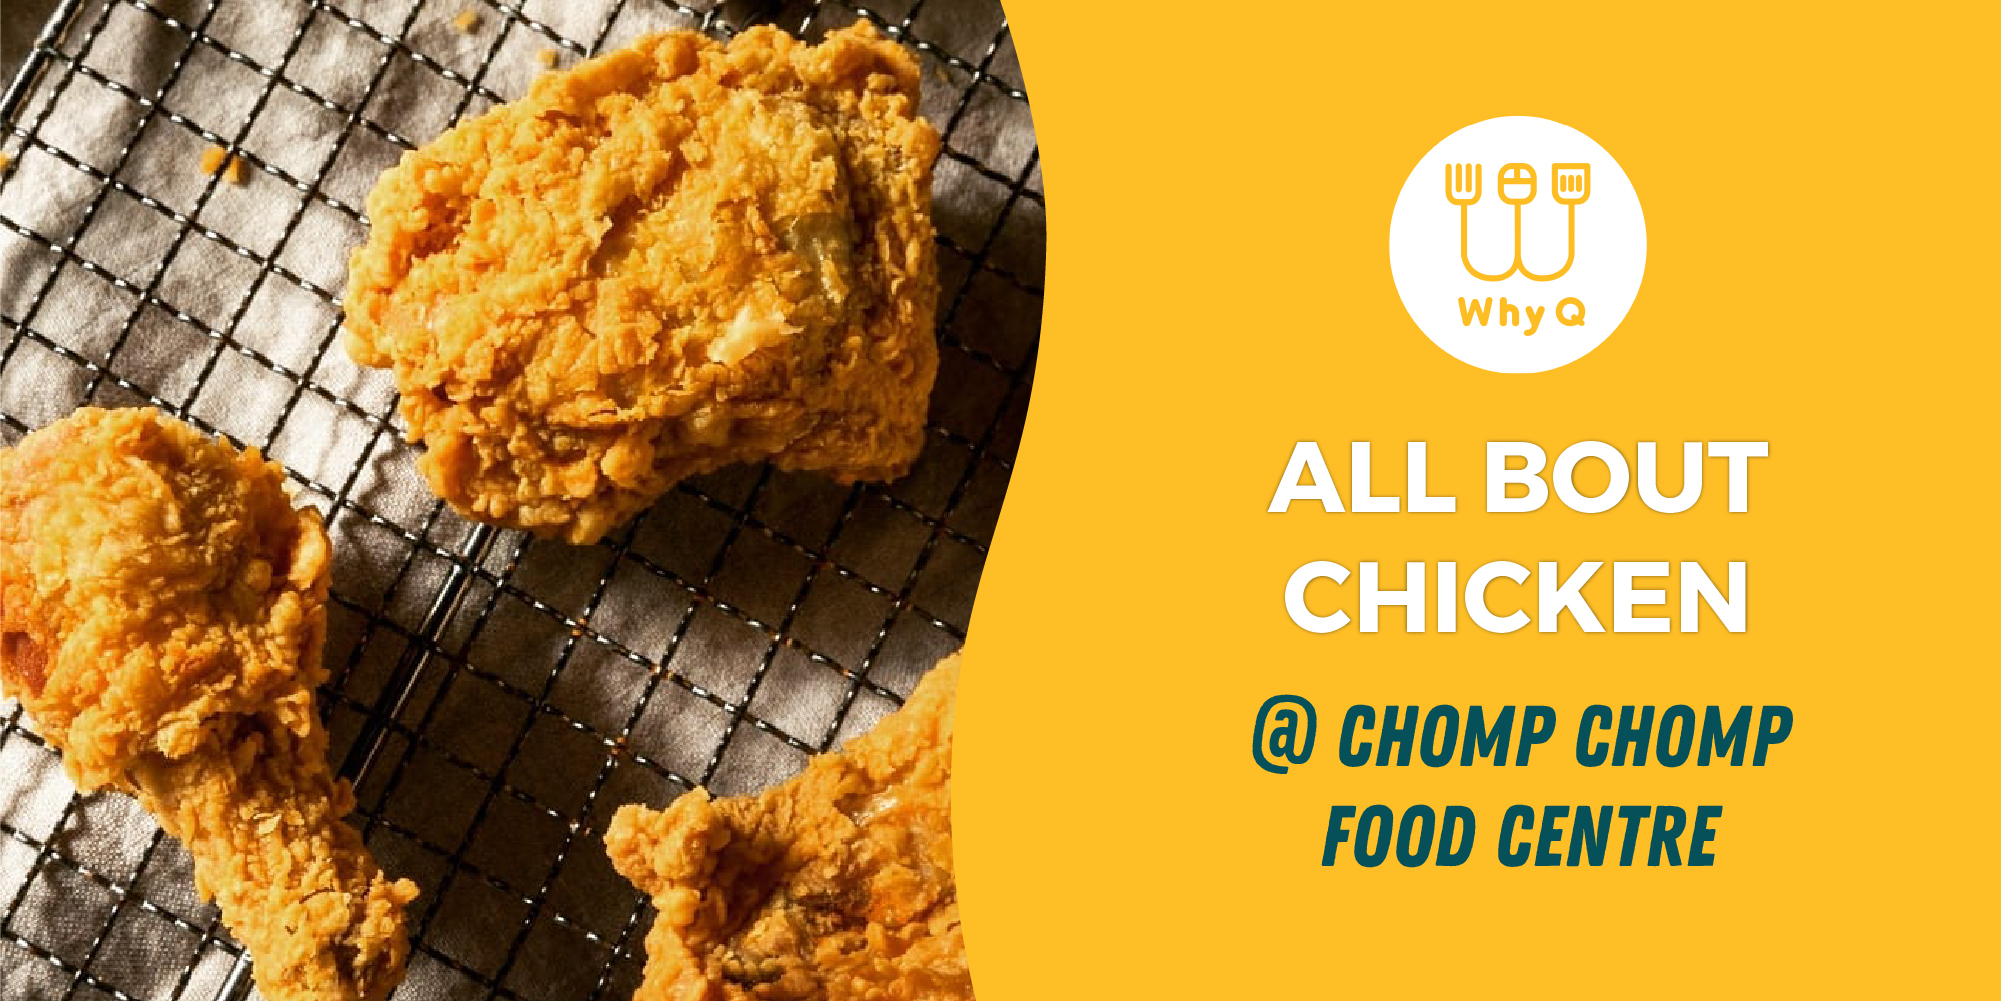 WhyQ halal guide All Bout Chicken